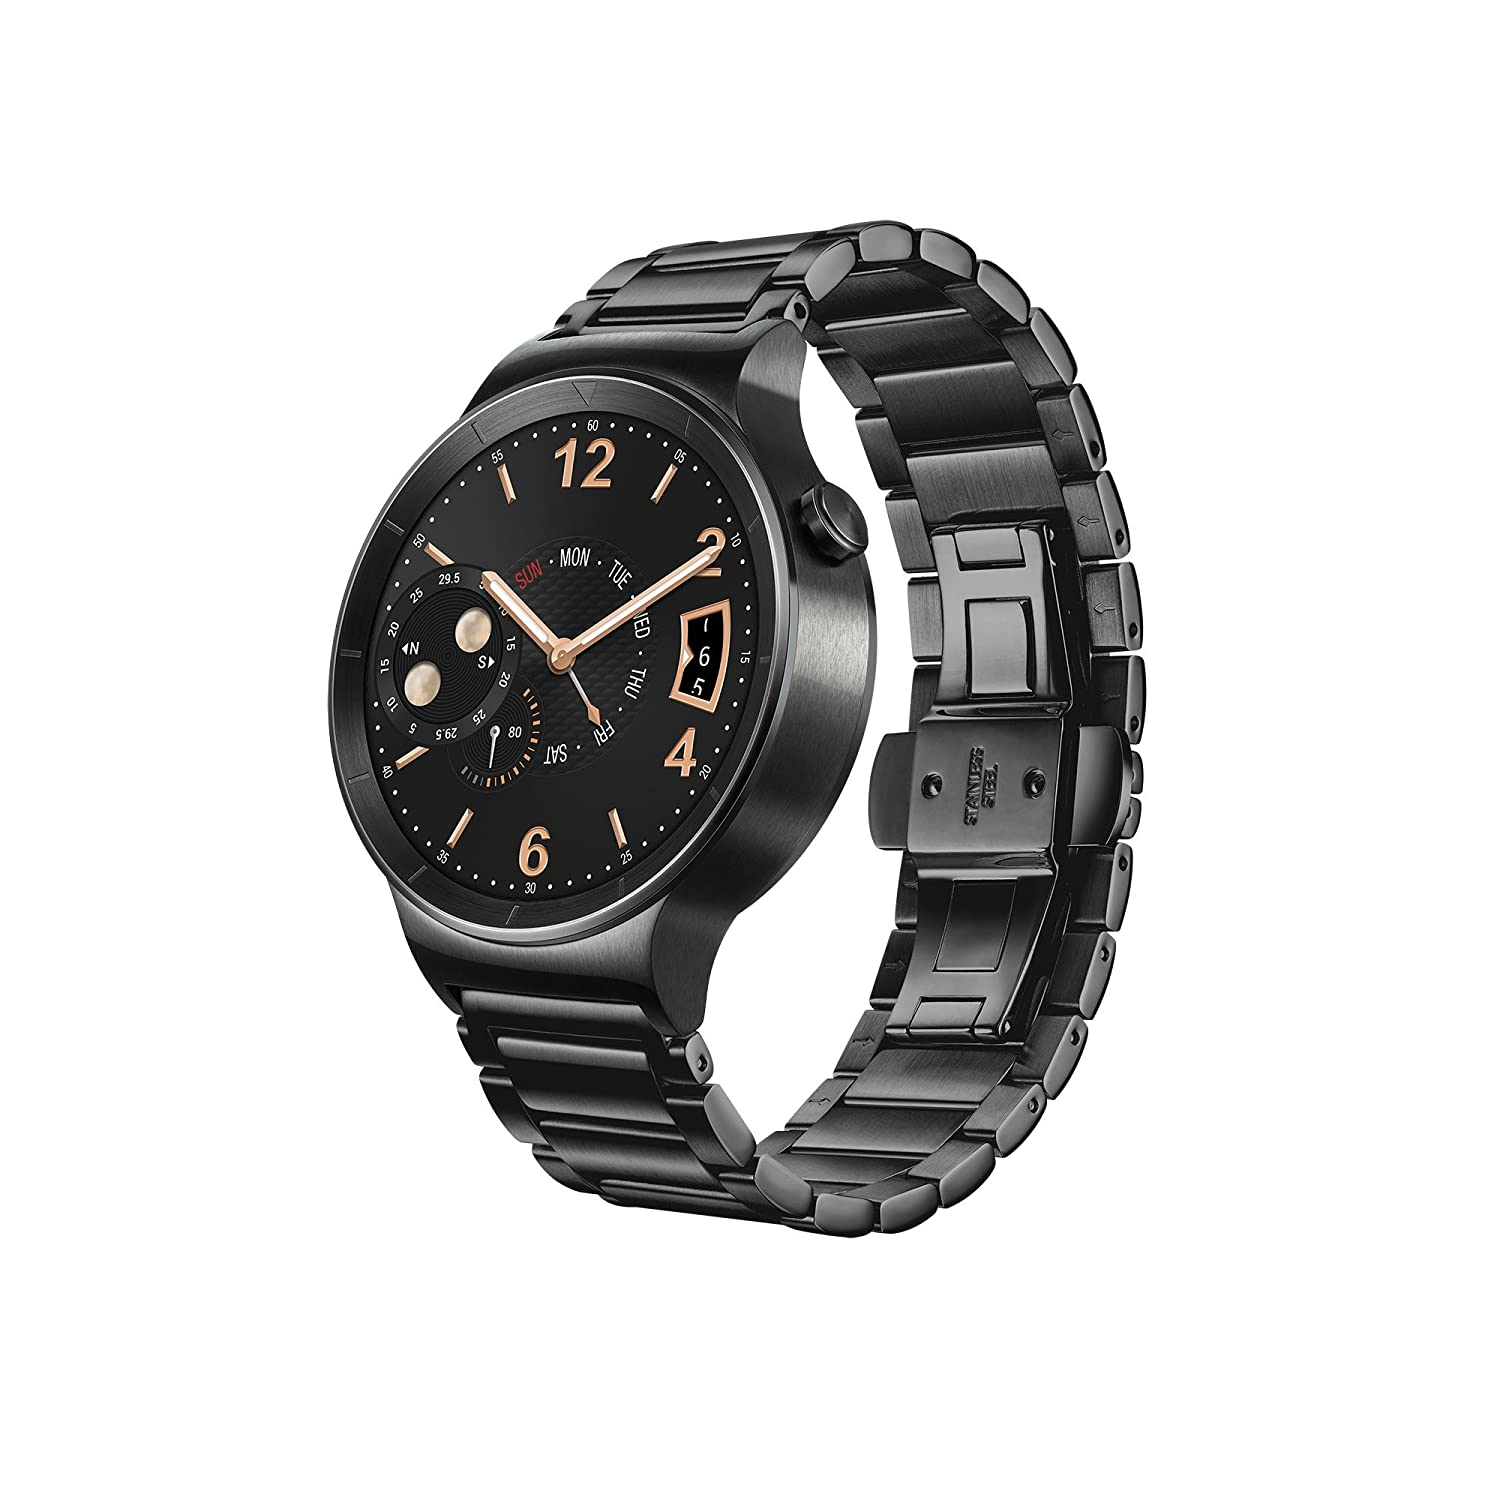 huawei w1. huawei w1 active smartwatch with plated stainless steel strap - black: amazon.co.uk: electronics